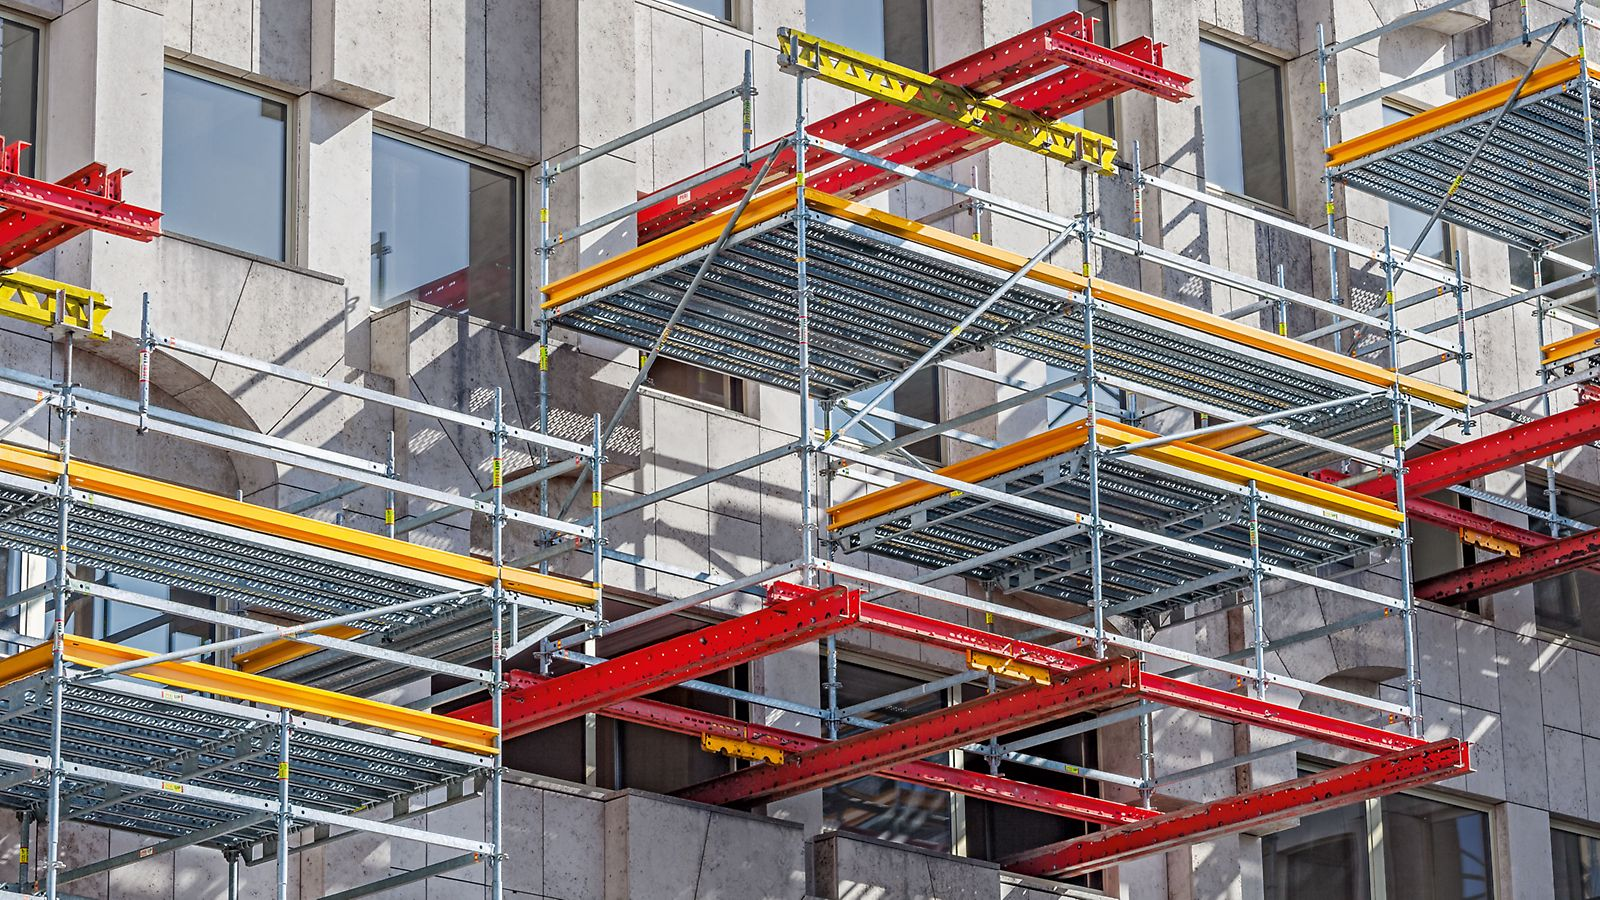 8 working platforms using two PERI modular construction systems: VARIOKIT and PERI UP. In addition, MULTIPROP aluminium slab props reliably supported the RCS climbing rails.